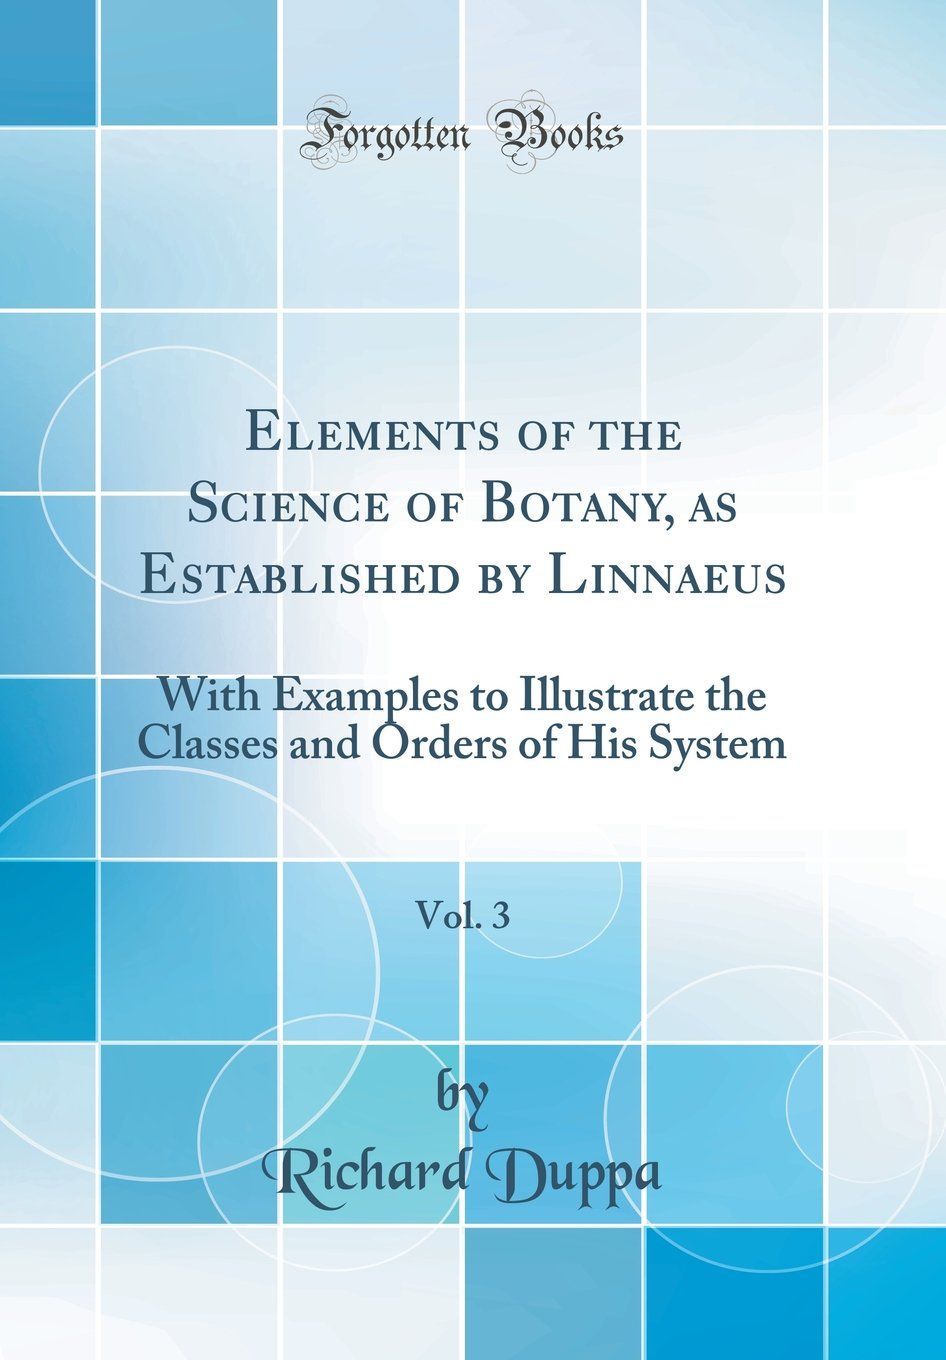 Elements of the Science of Botany, as Established by Linnaeus, Vol. 3: With Examples to Illustrate the Classes and Orders of His System (Classic Reprint) pdf epub